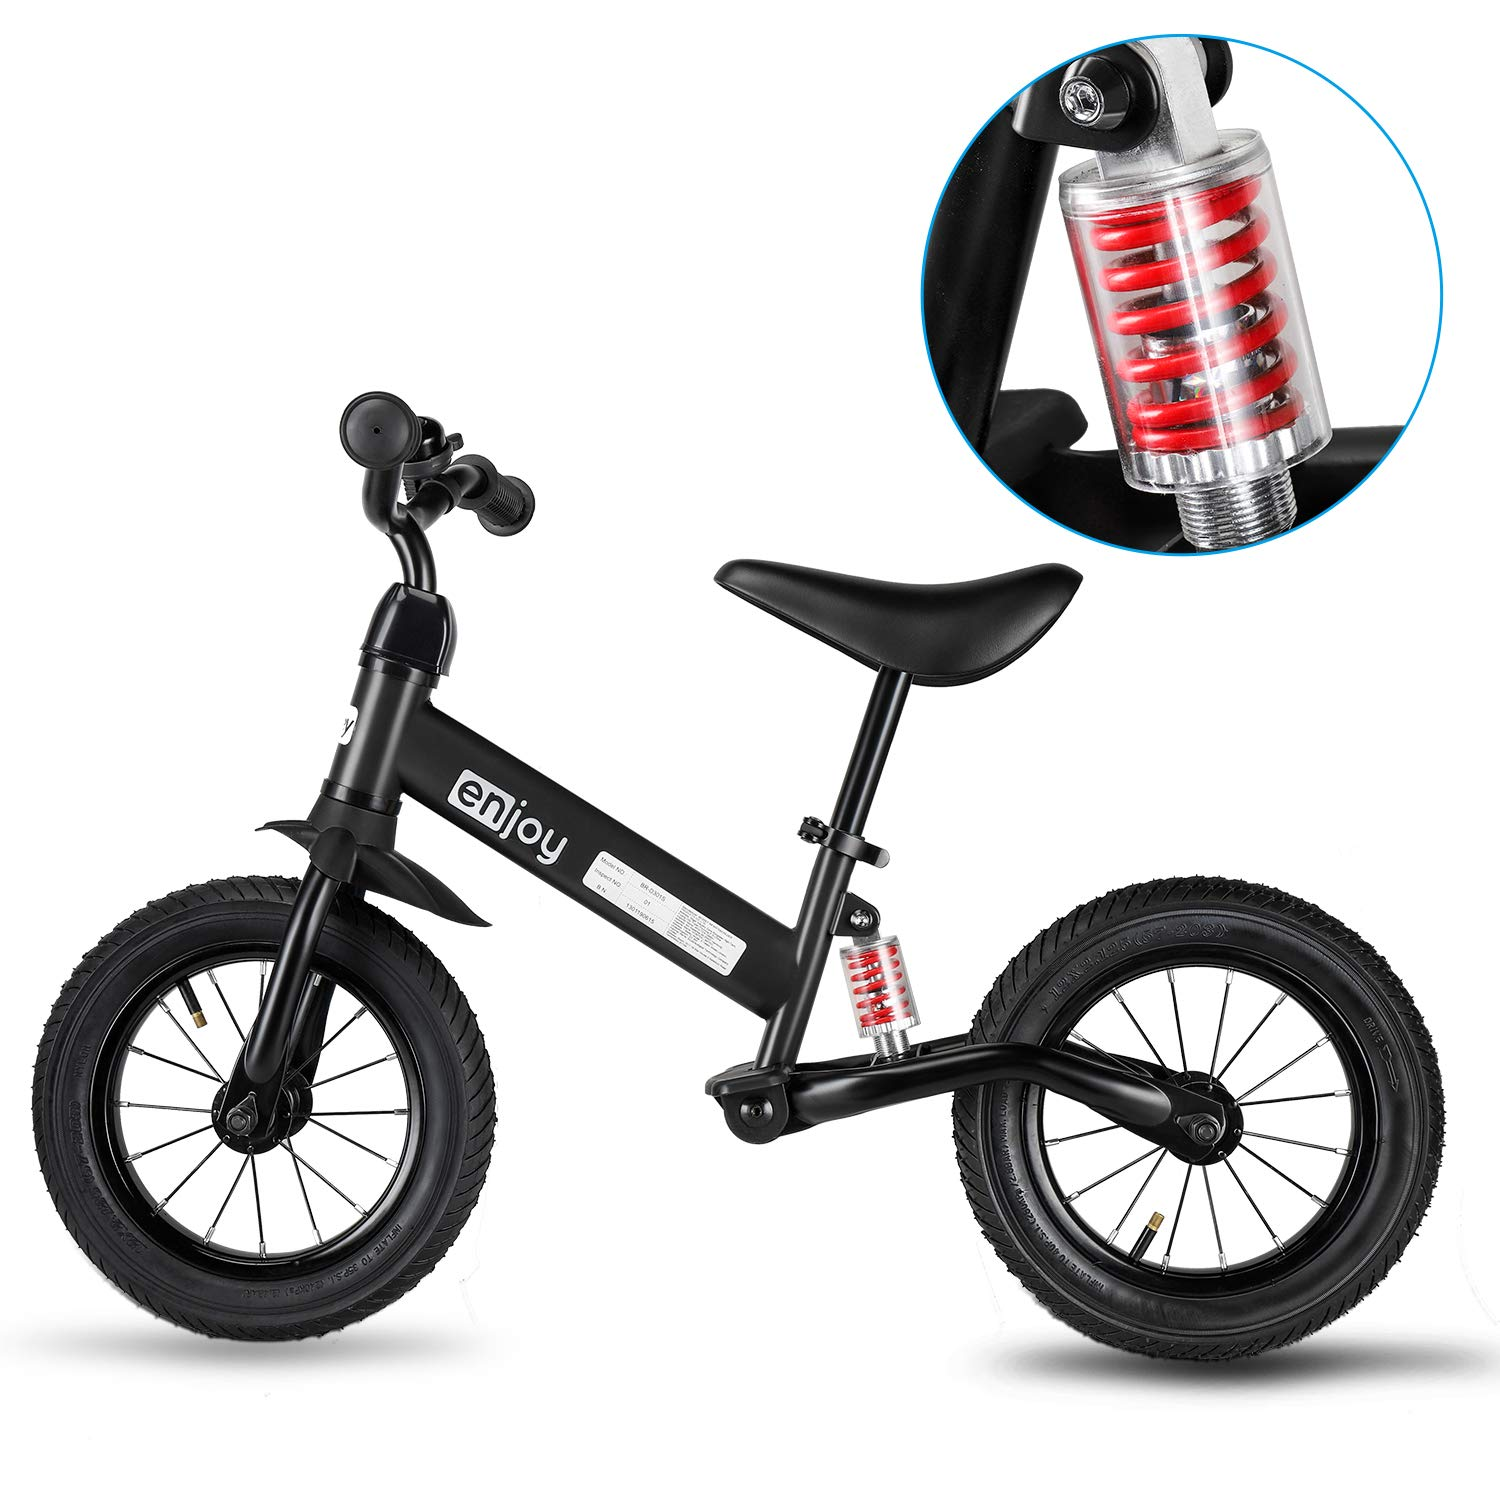 besrey Balance Bike Baby Bike for 3-5 Years Training Bicycle with Shock Absorber, Inflatable Rubber Tire for Kids and Toddlers